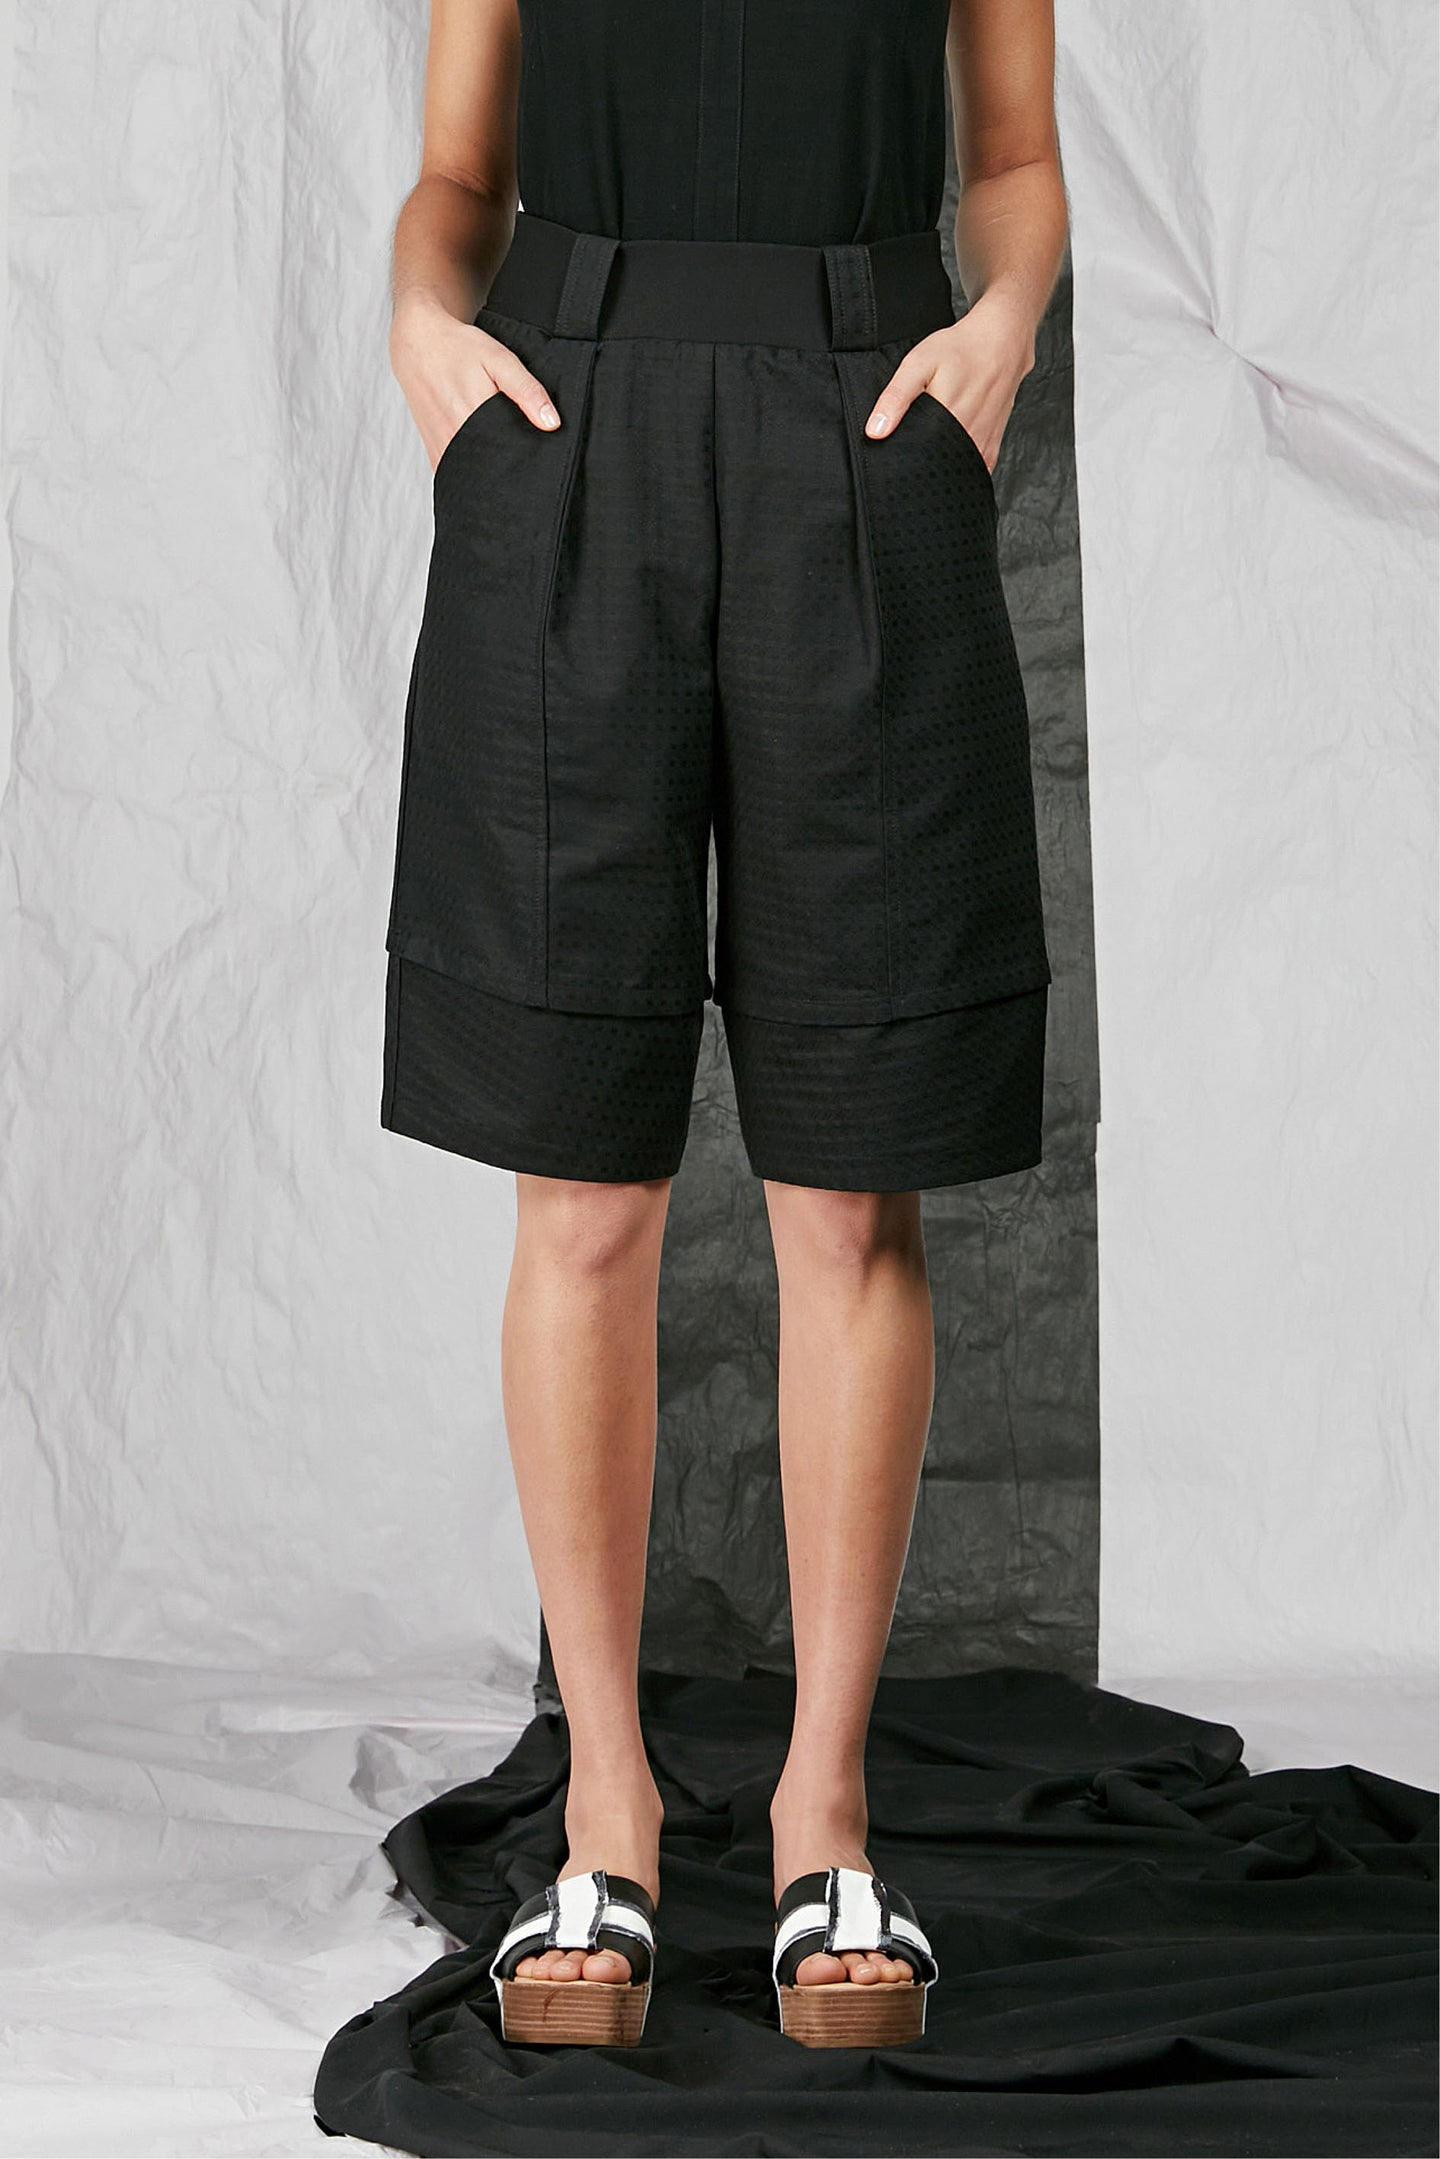 Women's Unisex Black Tailored Cotton Shorts